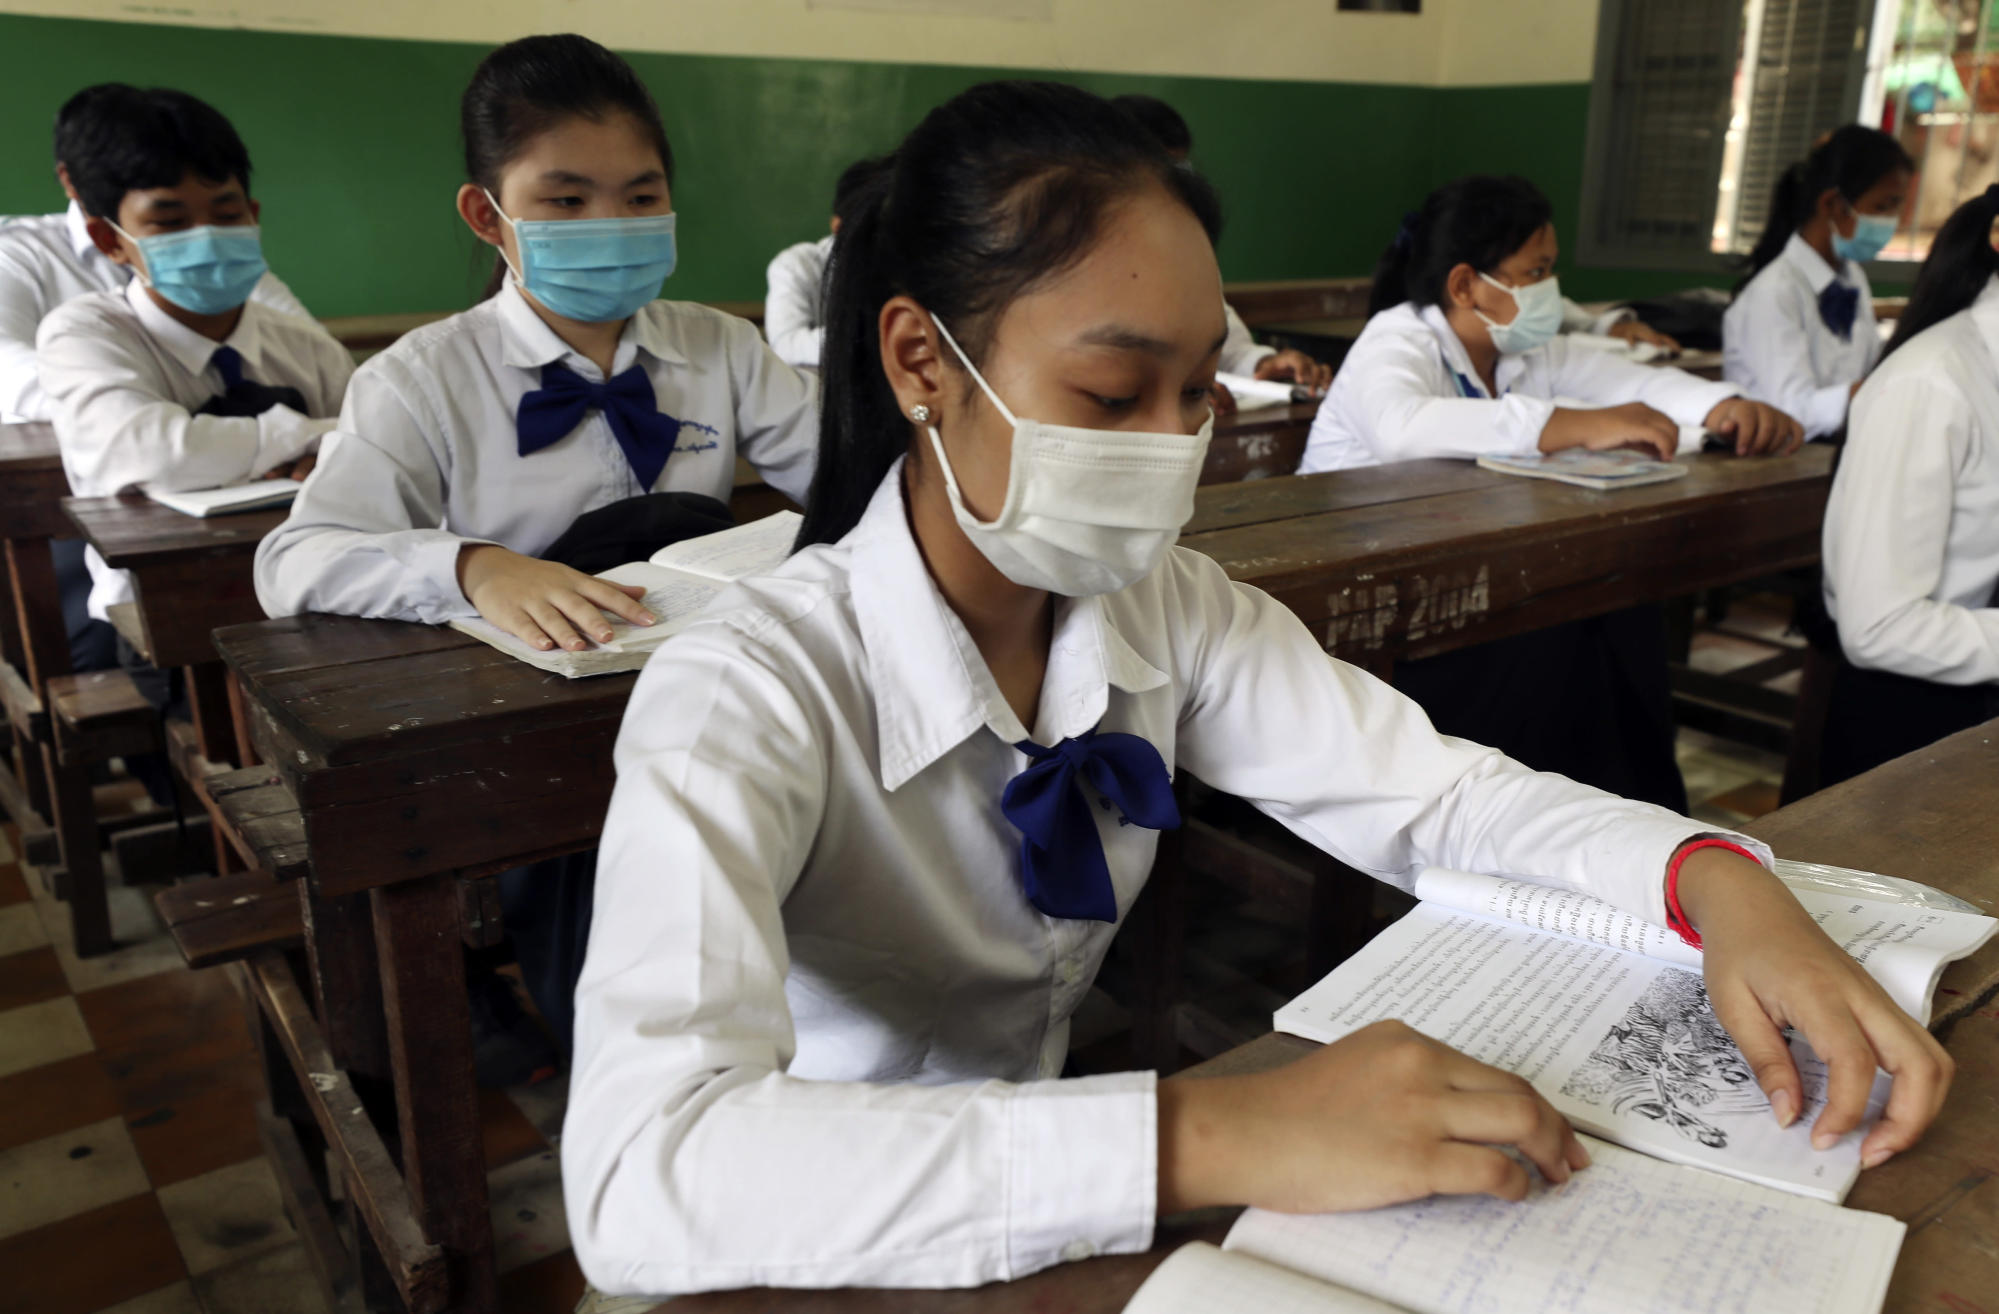 Cambodia reopens schools after coronavirus shutdown in March